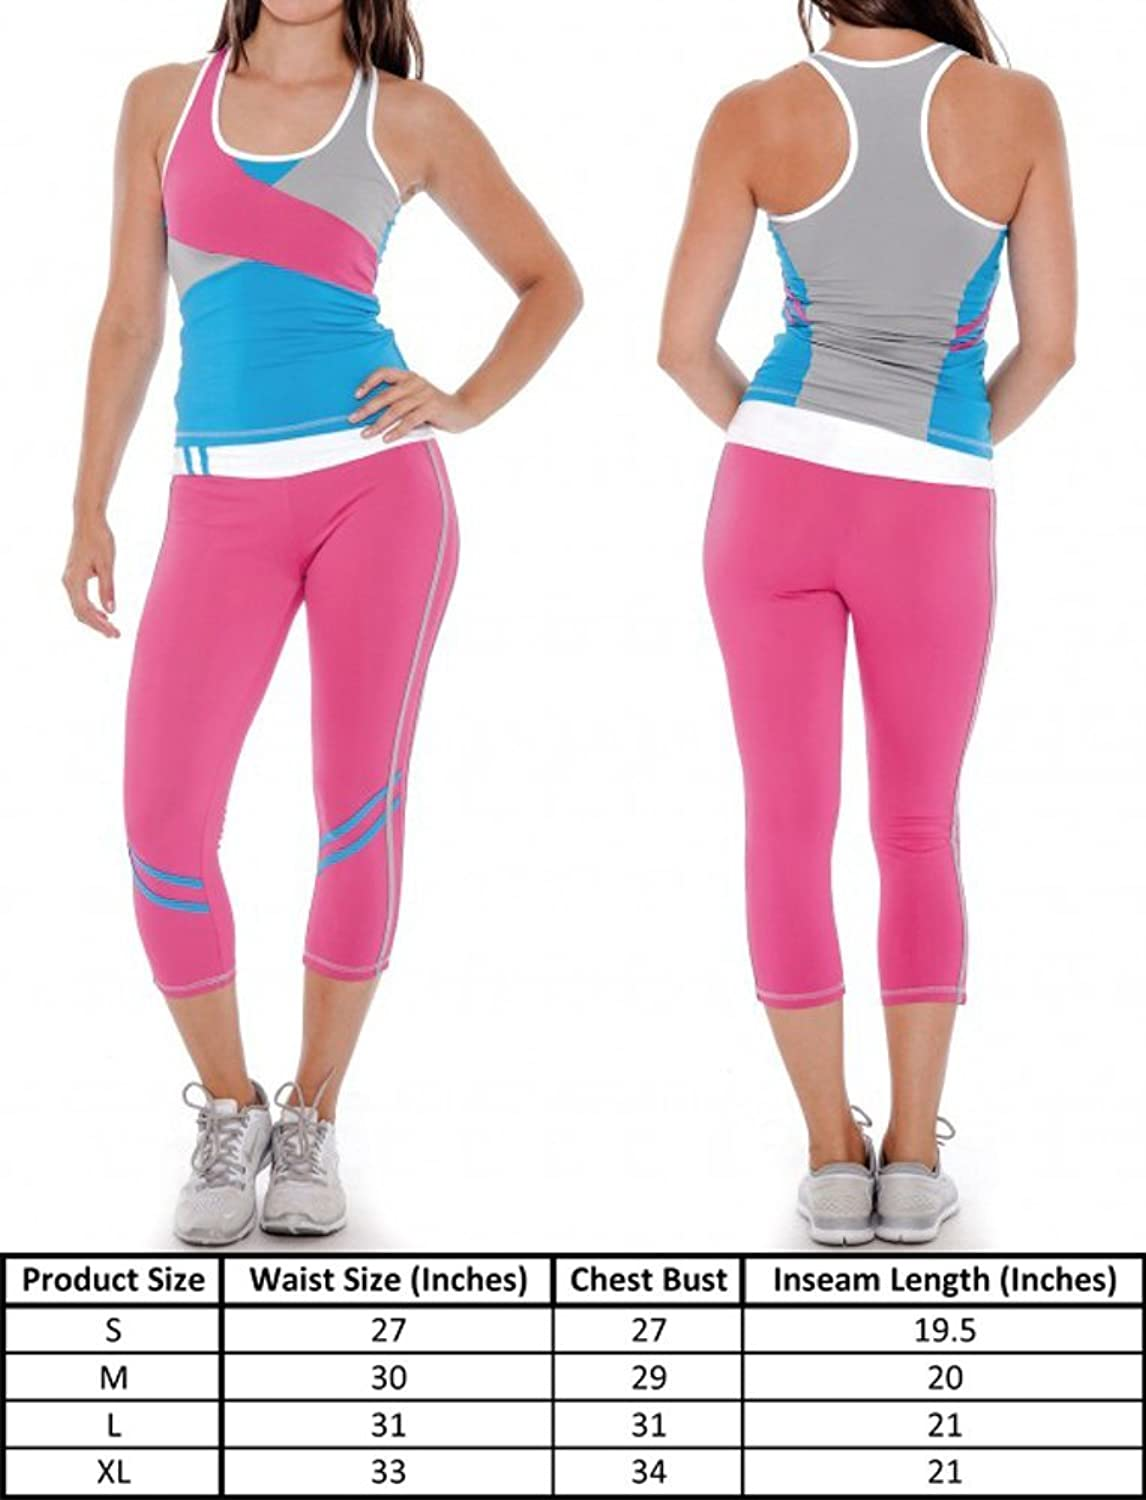 e1808c594500fc Enimay Women's Active Sport Workout Yoga Stretch 2 Piece Tank & Pant Set  Outfit at Amazon Women's Clothing store: